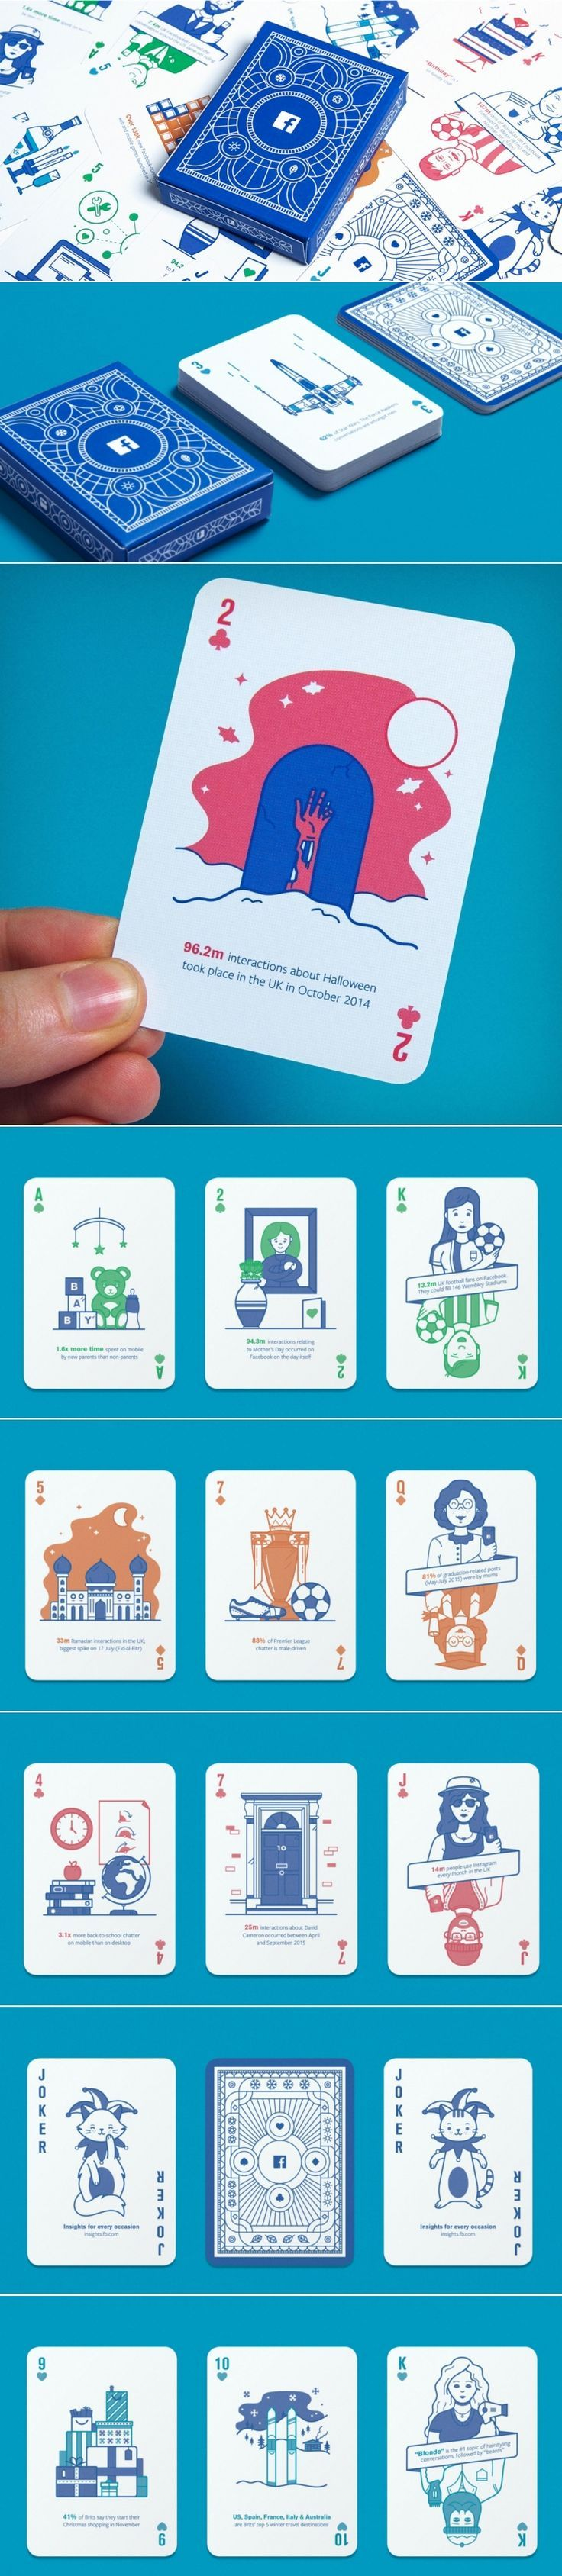 Facebooks NEW Deck of Playing Cards With Marketing Insights for Agencies